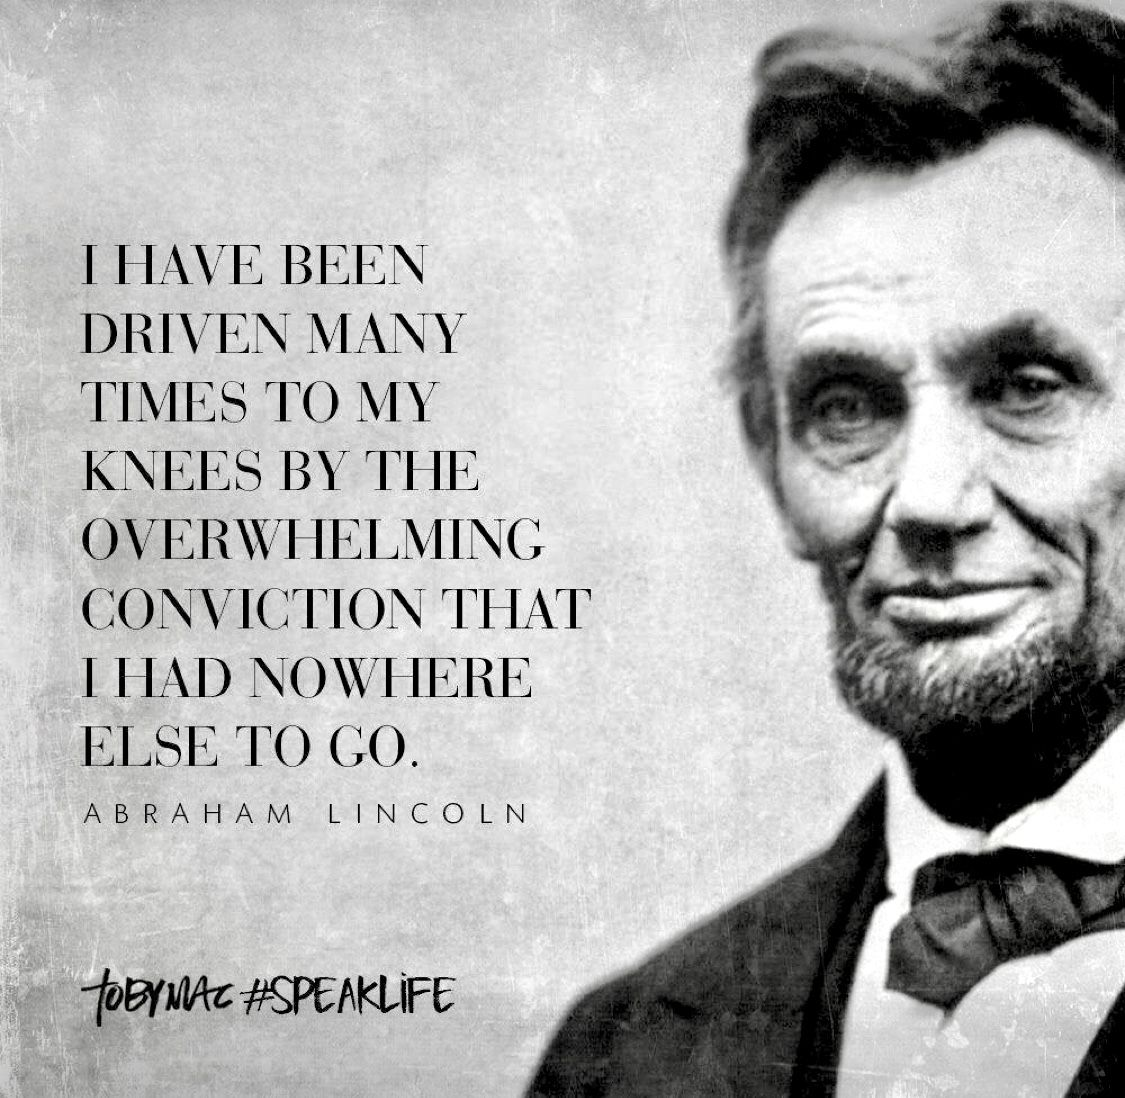 Tony Mac Speaklife Lincoln Quotes Abraham Lincoln Quotes